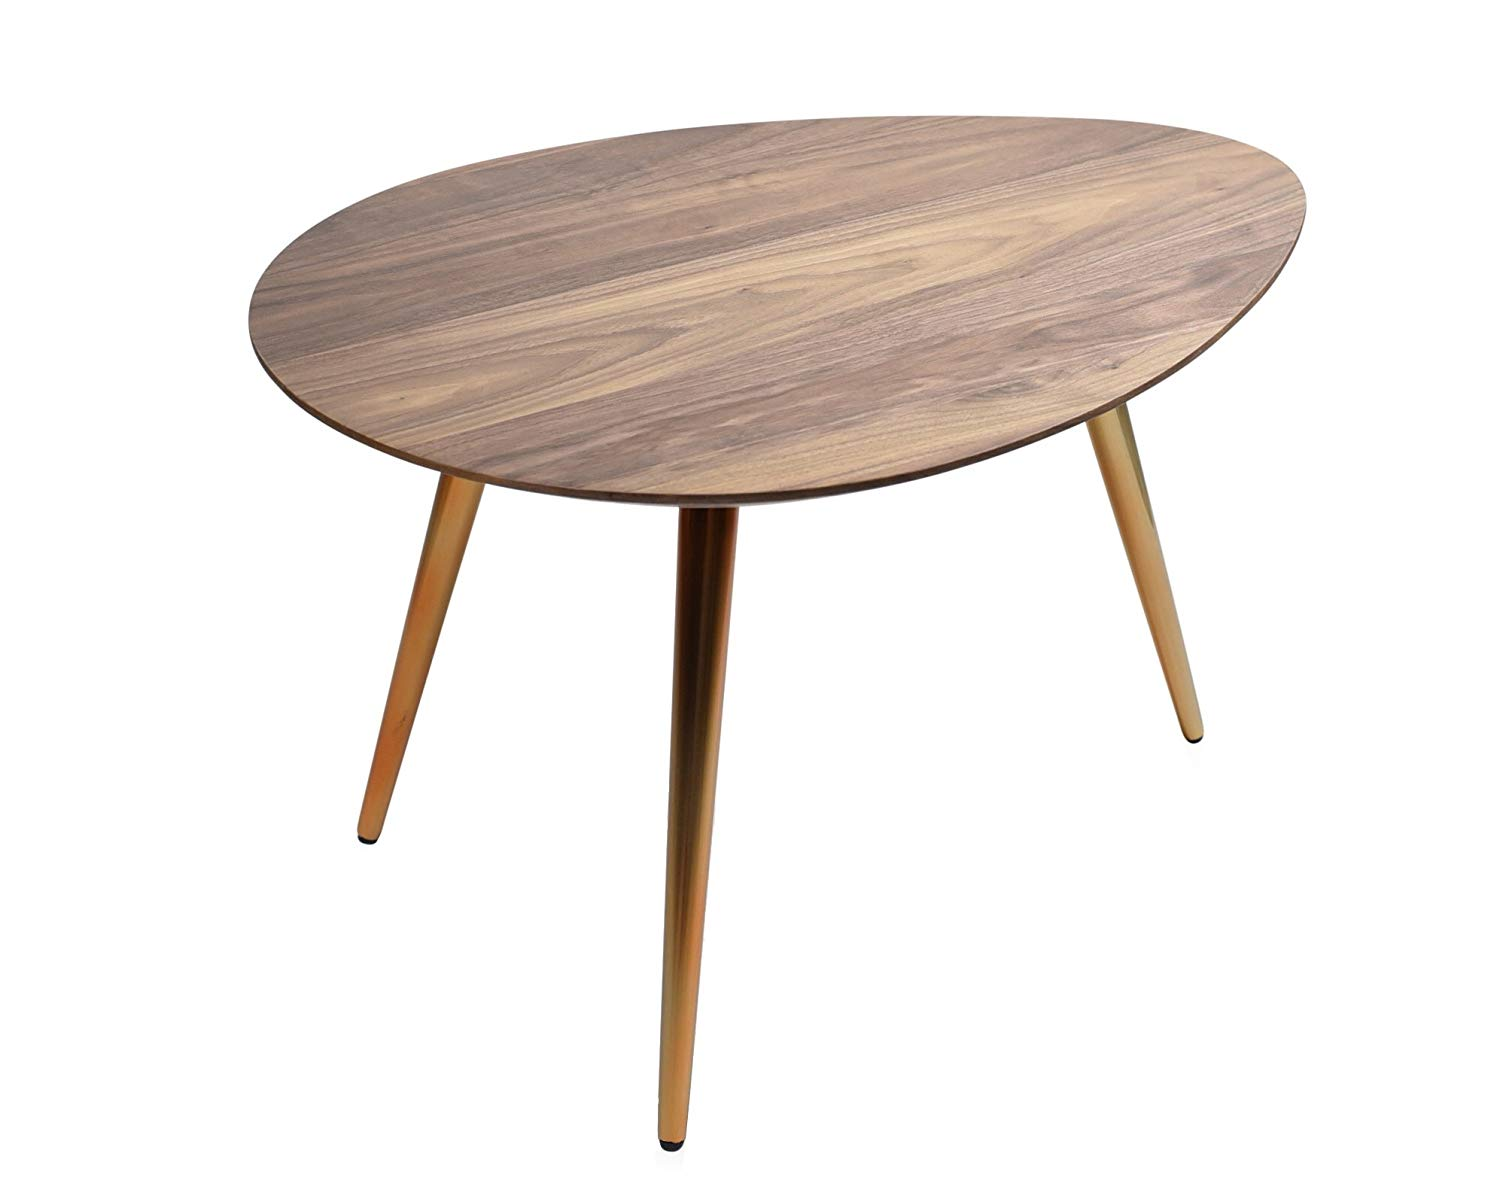 edloe finch small coffee table mid century modern end tables and for living room contemporary retro low walnut wood midcentury oval round inches acrylic accent glass top dining